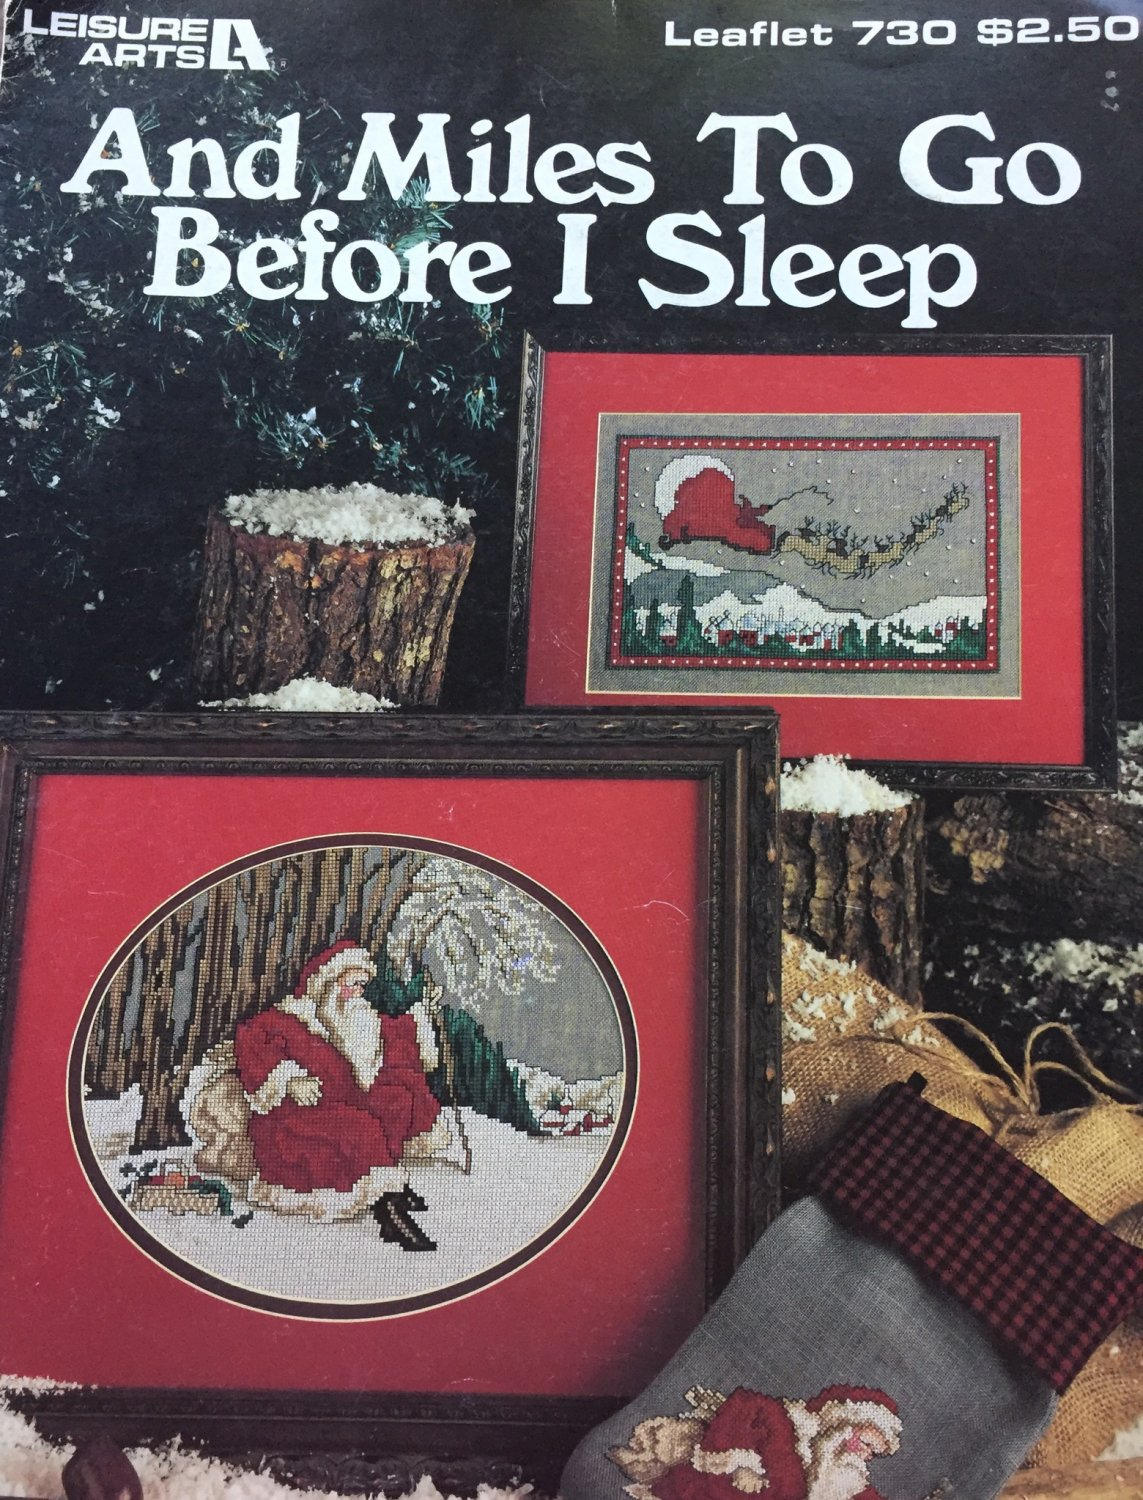 And MIles to go before I Sleep Santa Claus Cross Stitch Leisure Arts 730